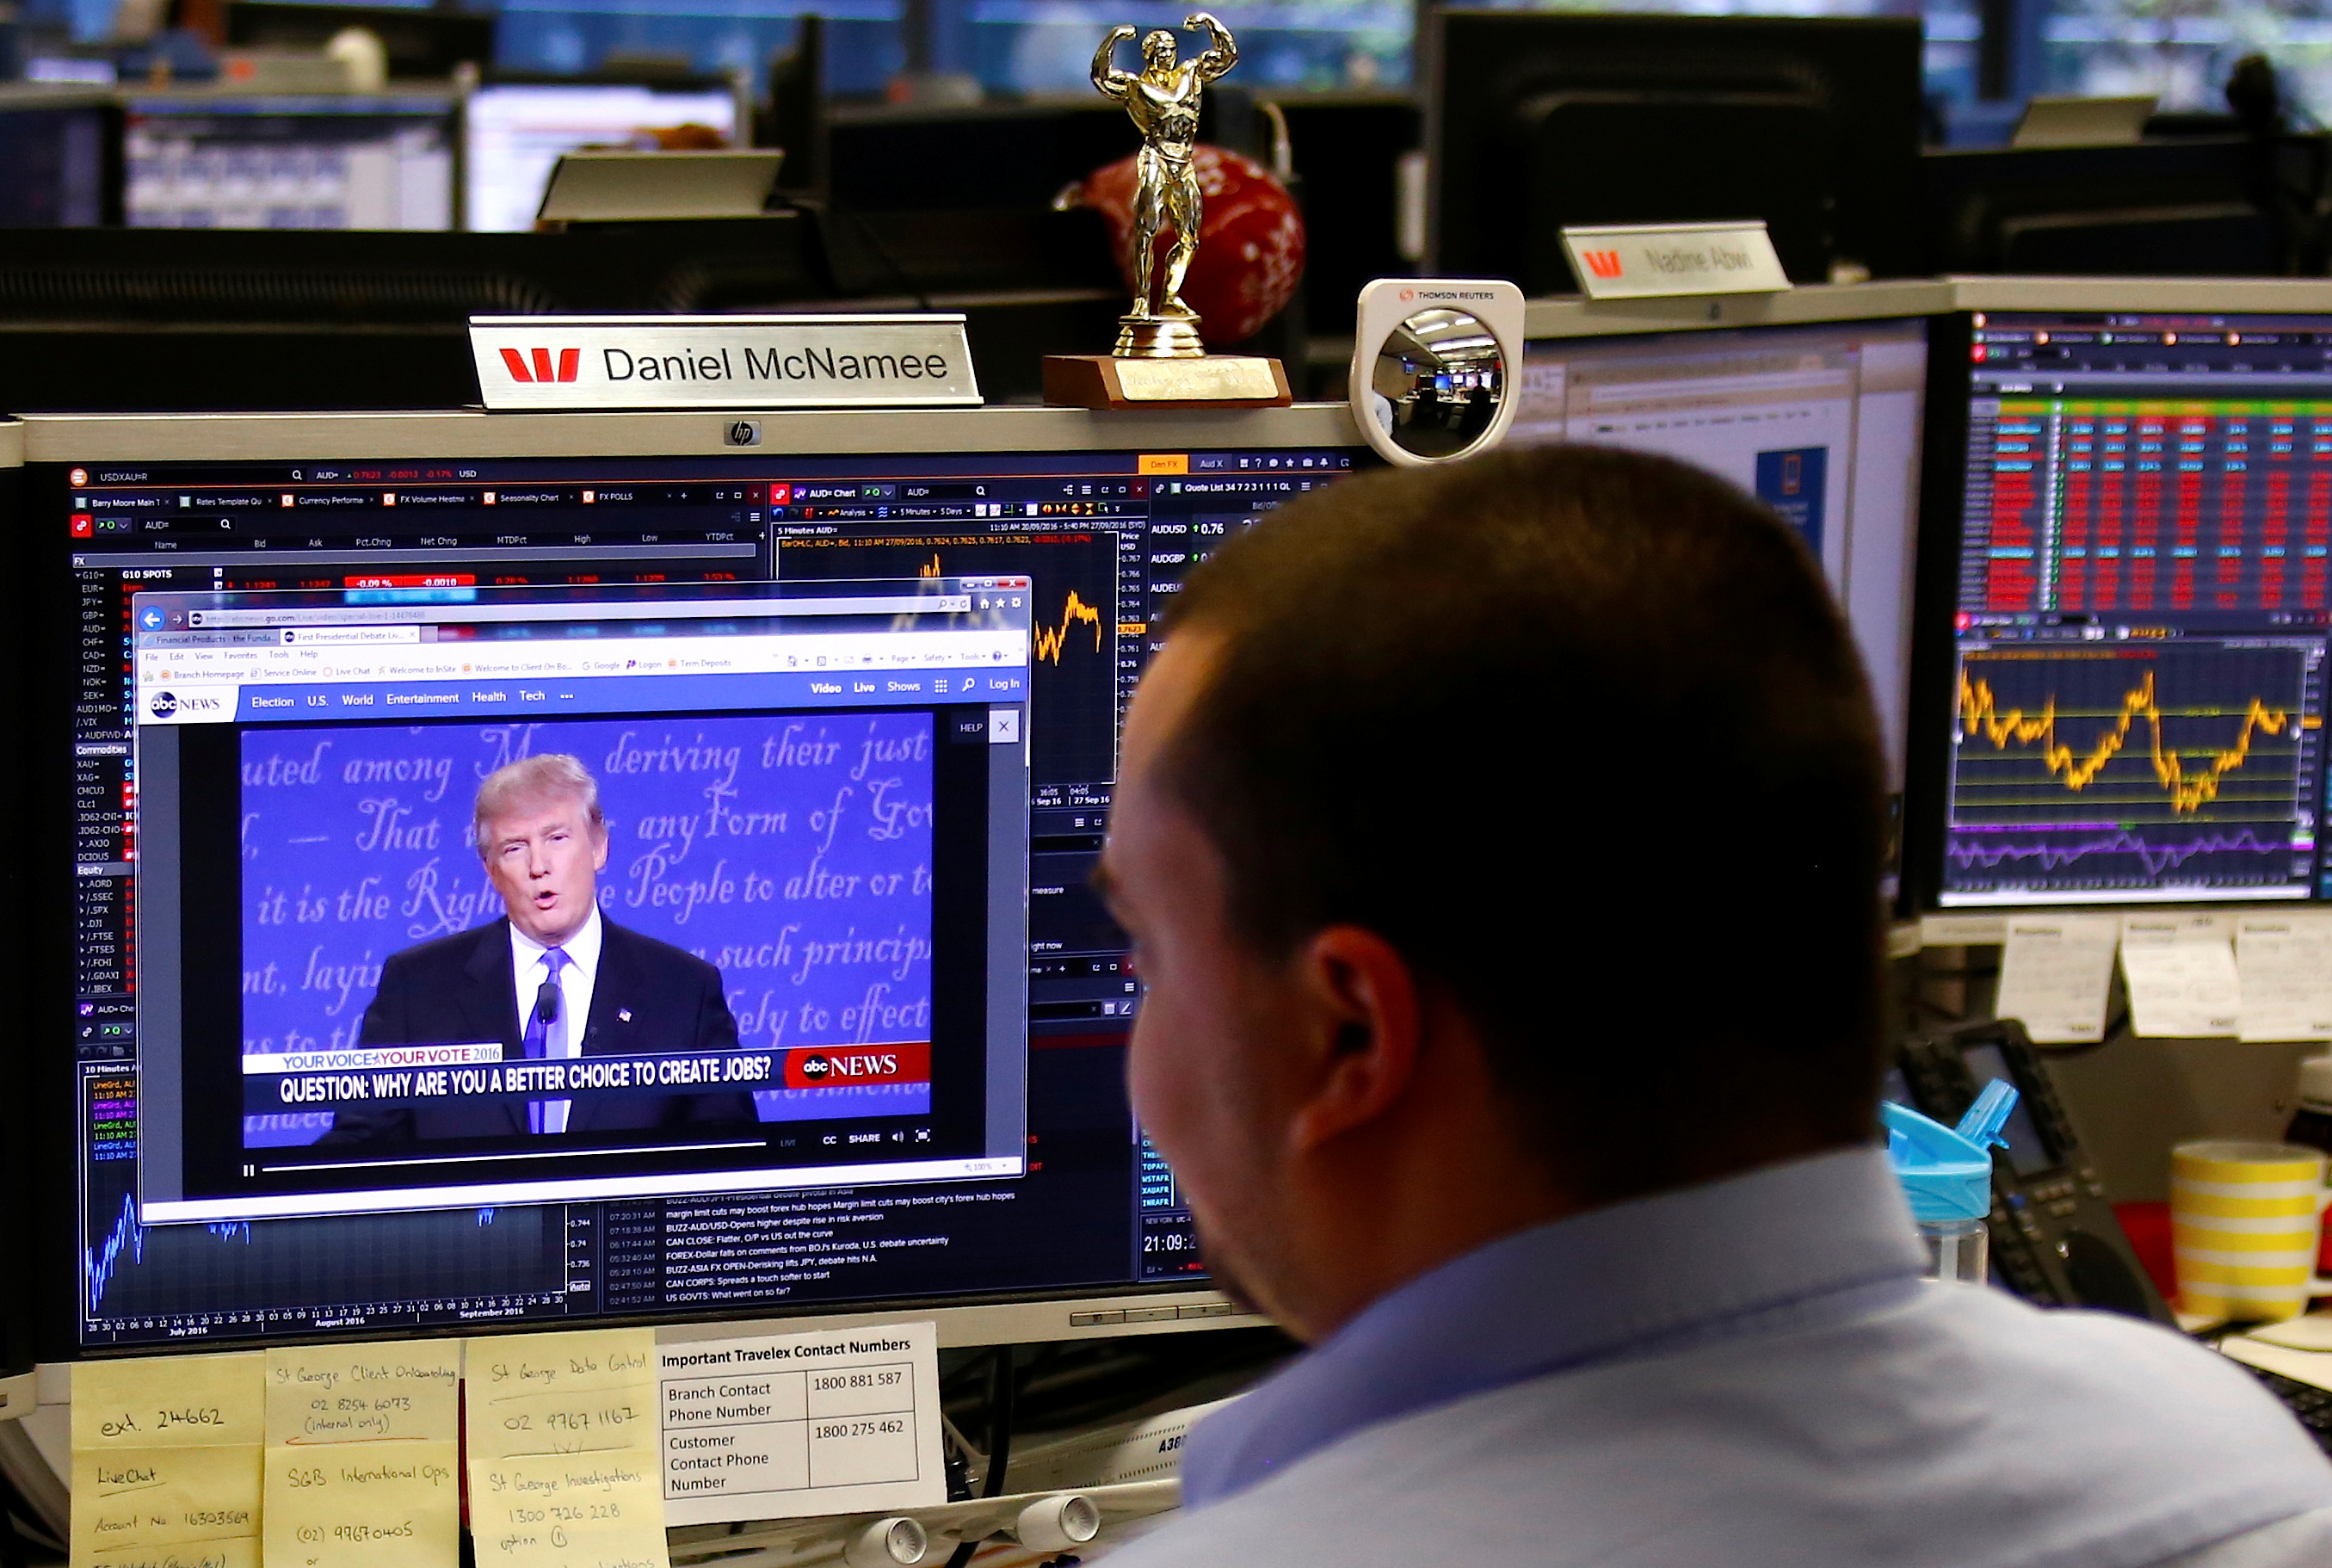 Volatility Erupts in Global Currency Markets - One News Page VIDEO